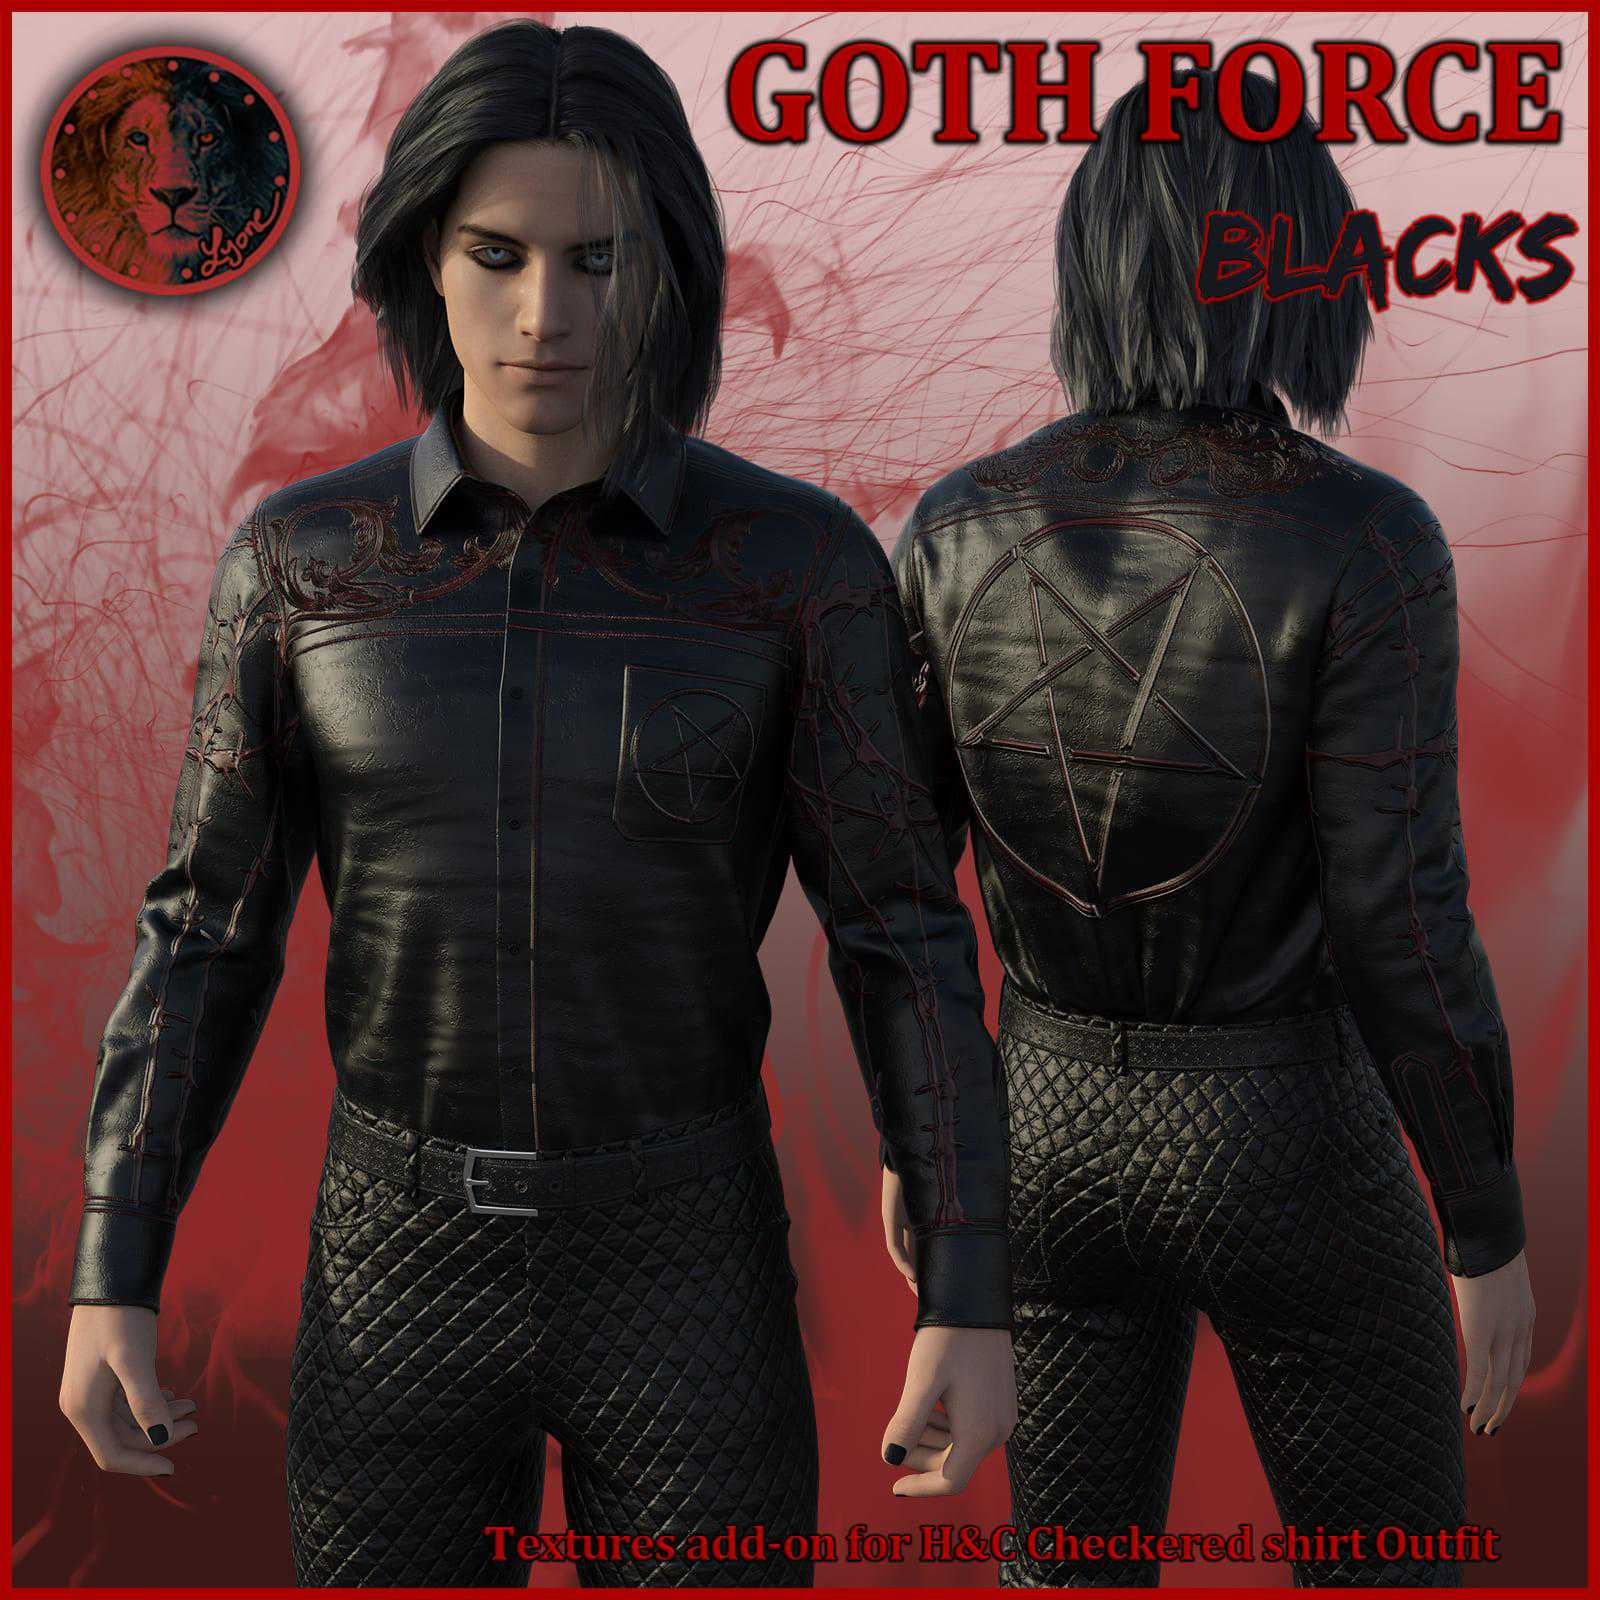 Goth Force blacks for H and C Checkered Shirt Outfit for G8M